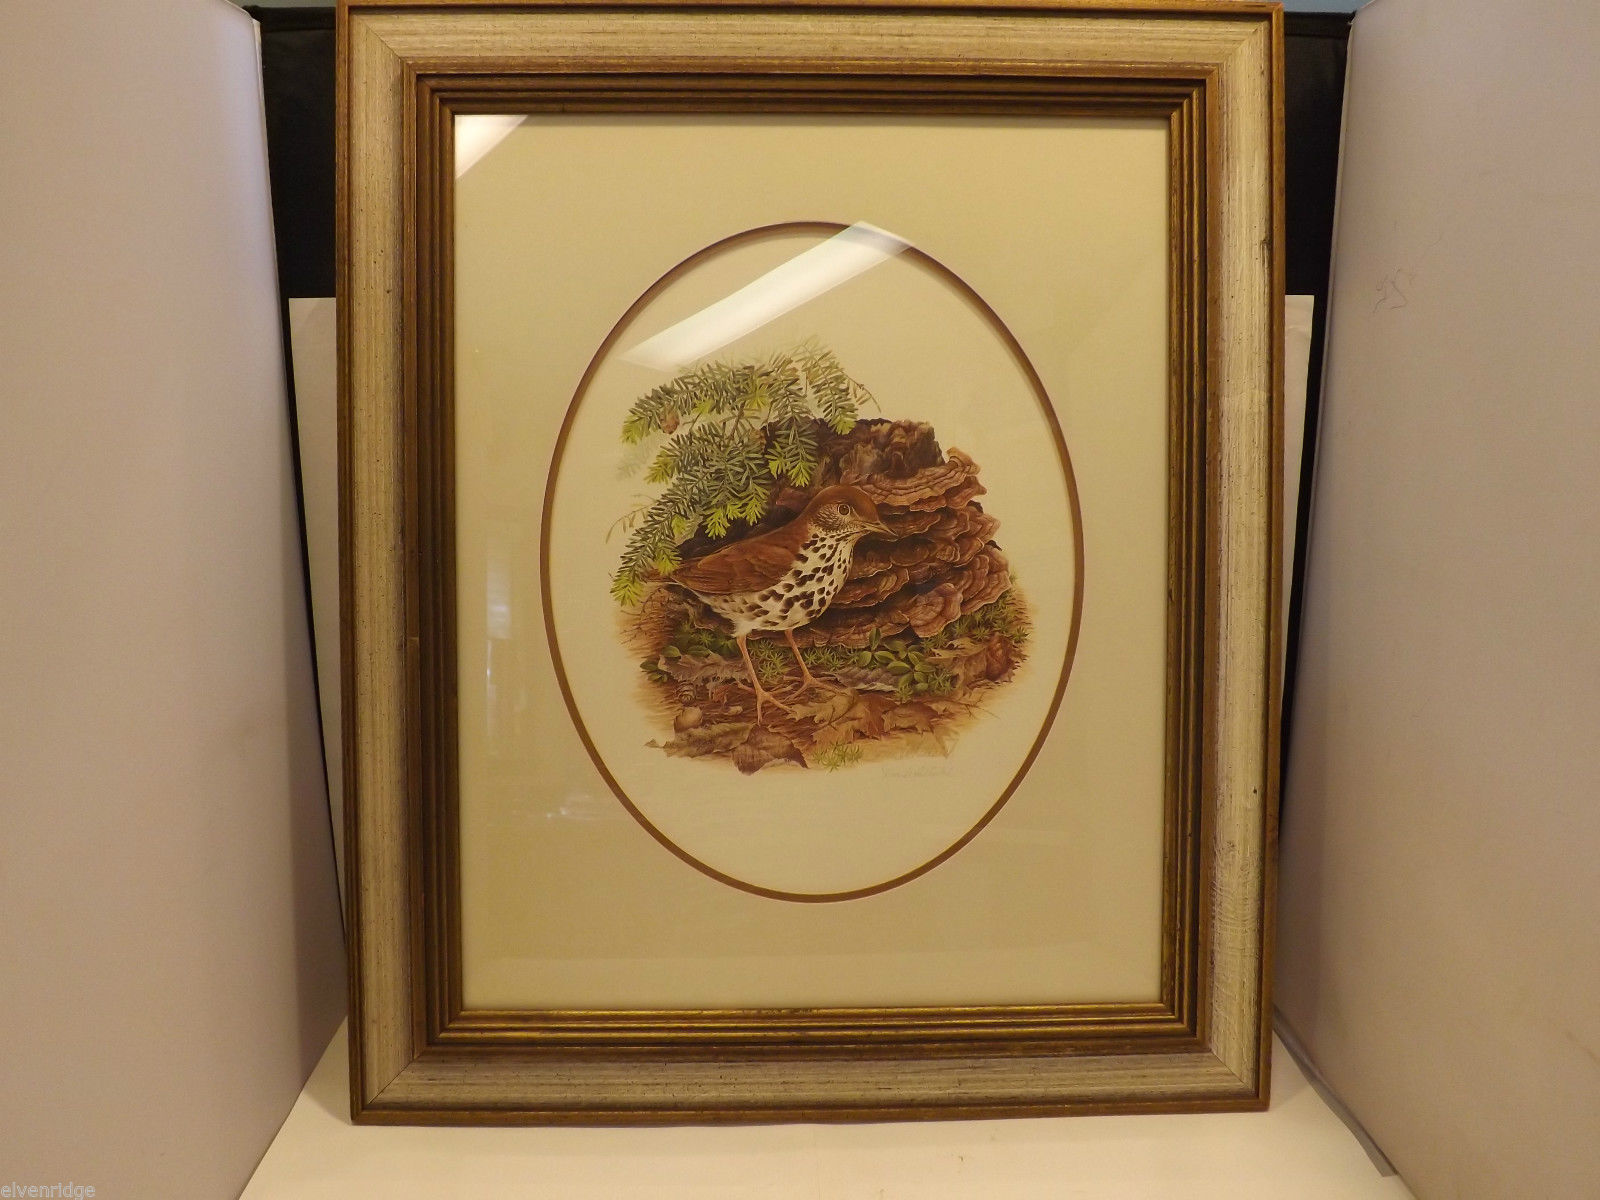 Framed Drawing of a Wood Thrush Bird in Wooden Scenery Signed by Artist